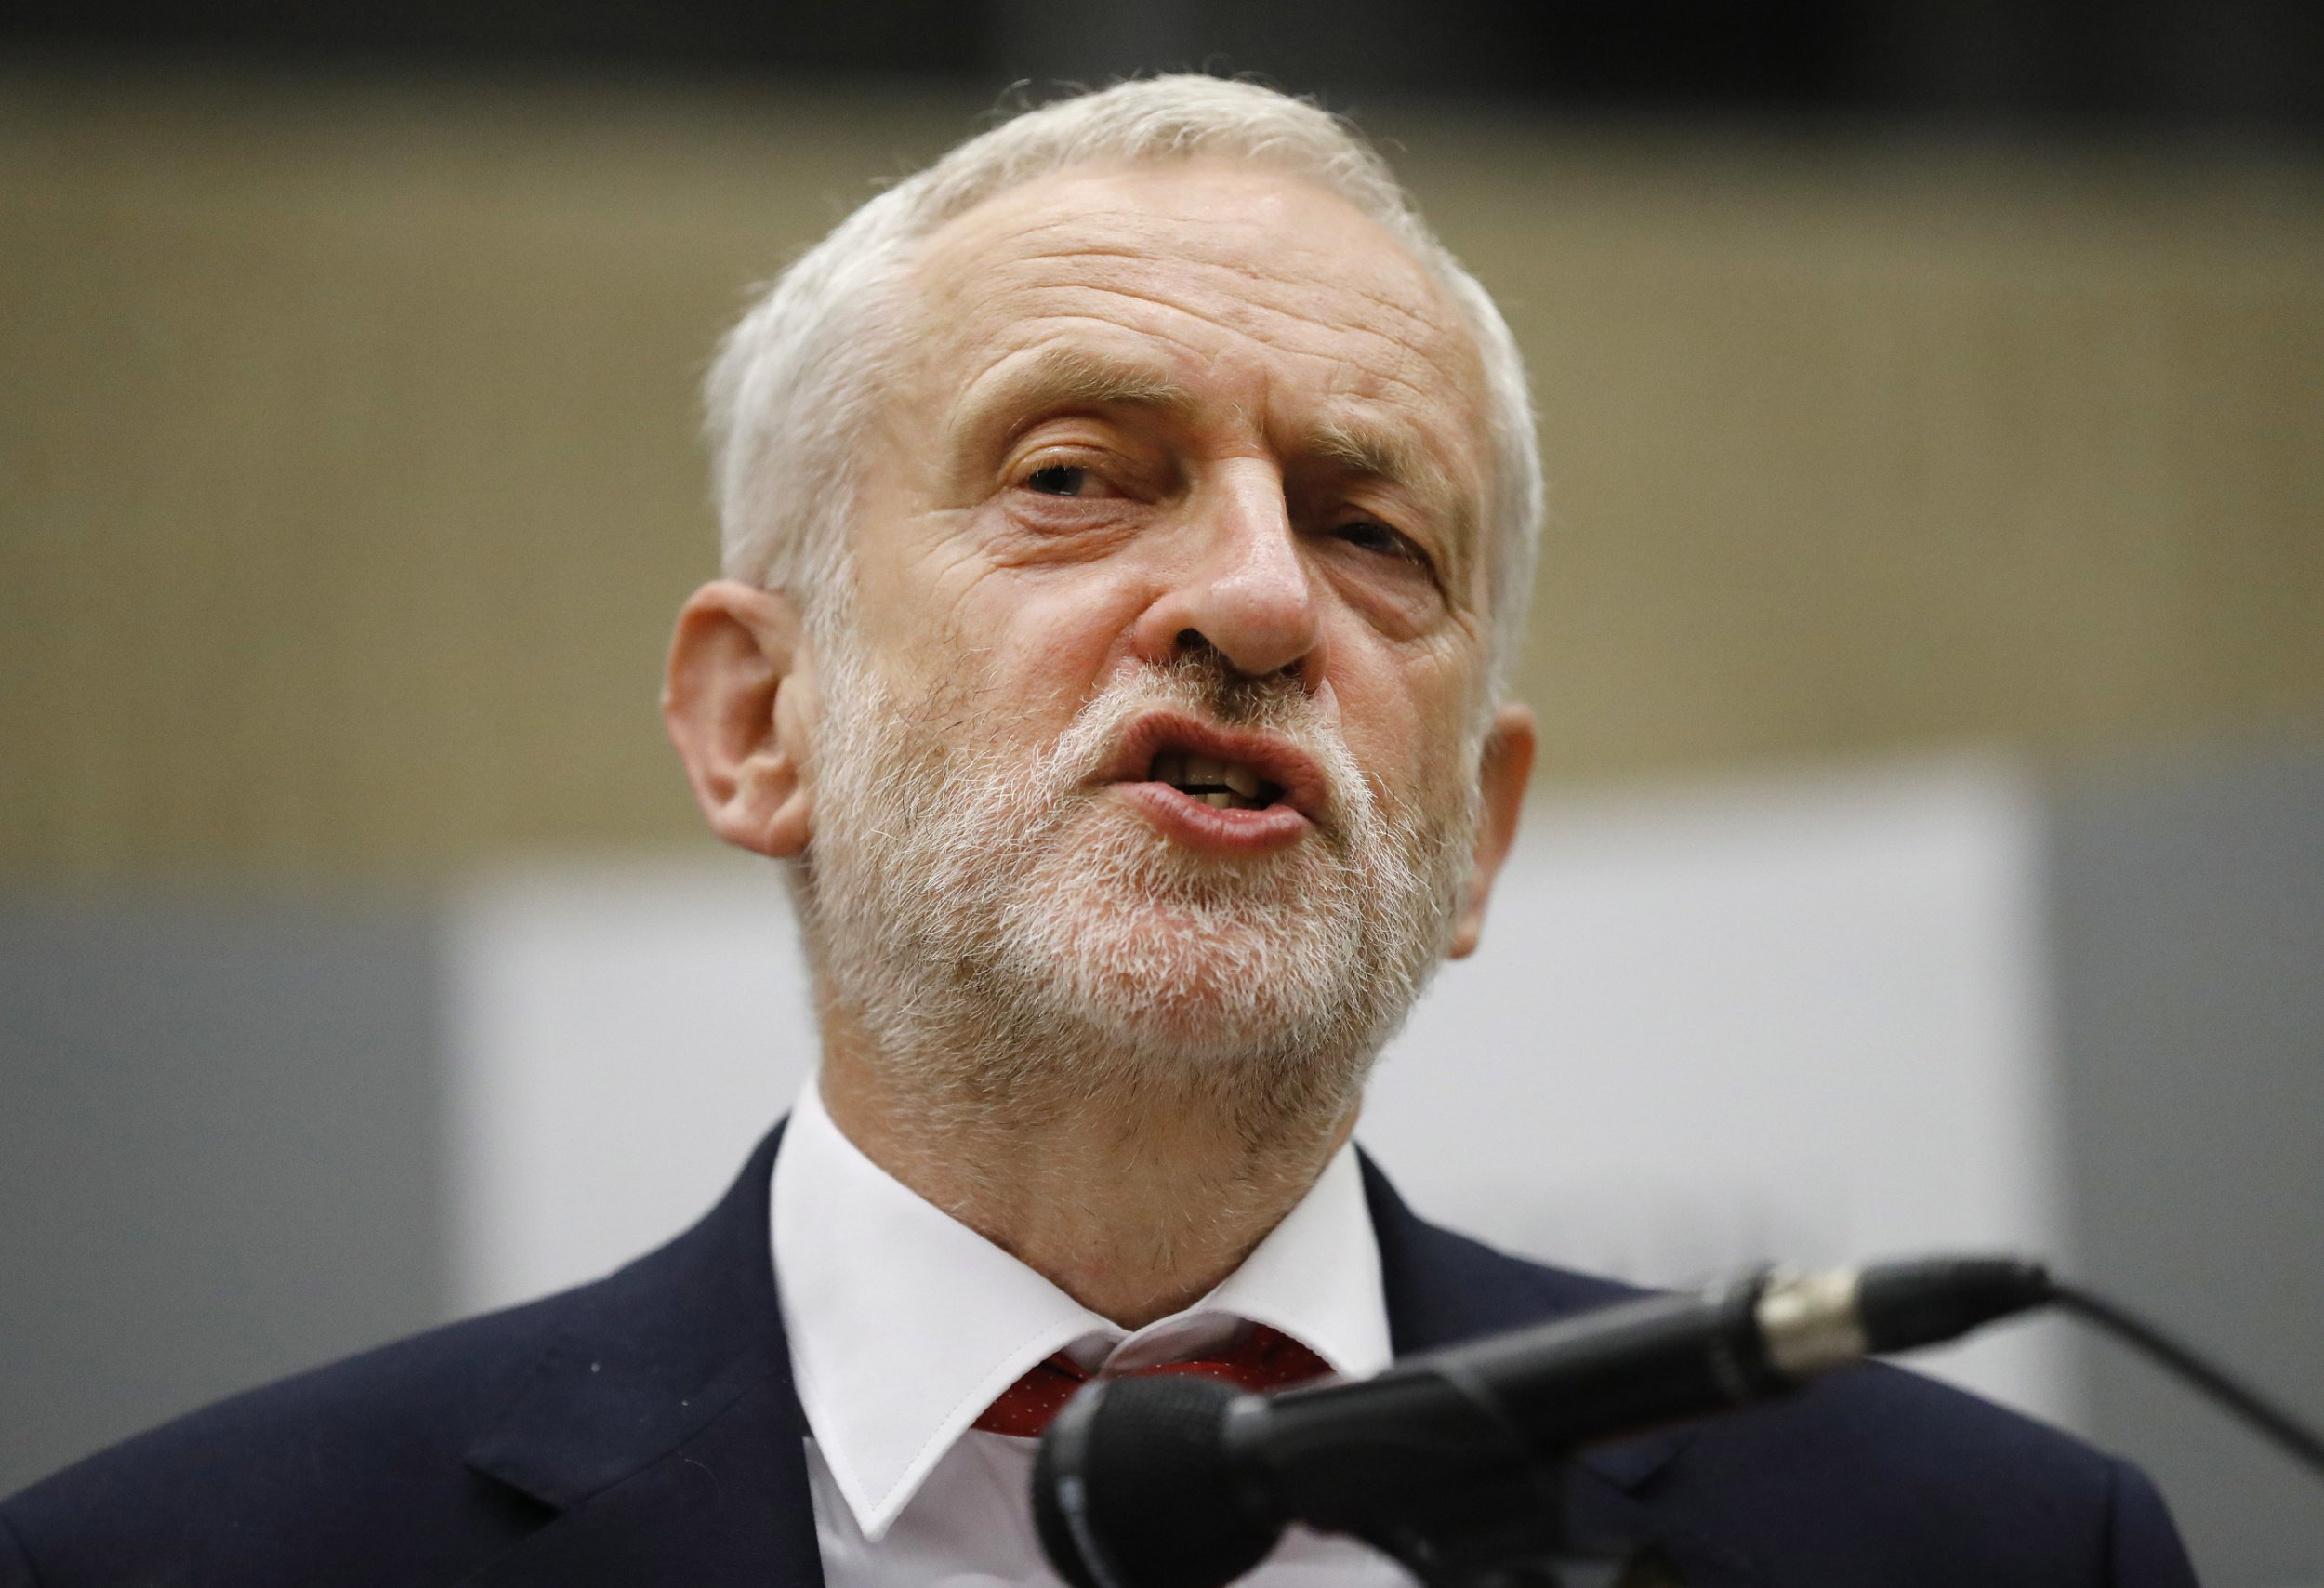 "FILE - This is a Friday, June 9, 2017 file photo of Britain's Labour Party leader Jeremy Corbyn as he makes an address after he retained his parliamentary seat in Islington north London, Jewish groups in Britain on Monday March 26, 2018 were accusing the country's main opposition leader of failing to stamp out anti-Semitism within his left-of-center party. The Board of Deputies of British Jews and the Jewish Leadership Council say Jeremy Corbyn's Labour Party has shown a ""repeated institutional failure"" to address anti-Jewish prejudice. (AP Photo/Frank Augstein, File)"